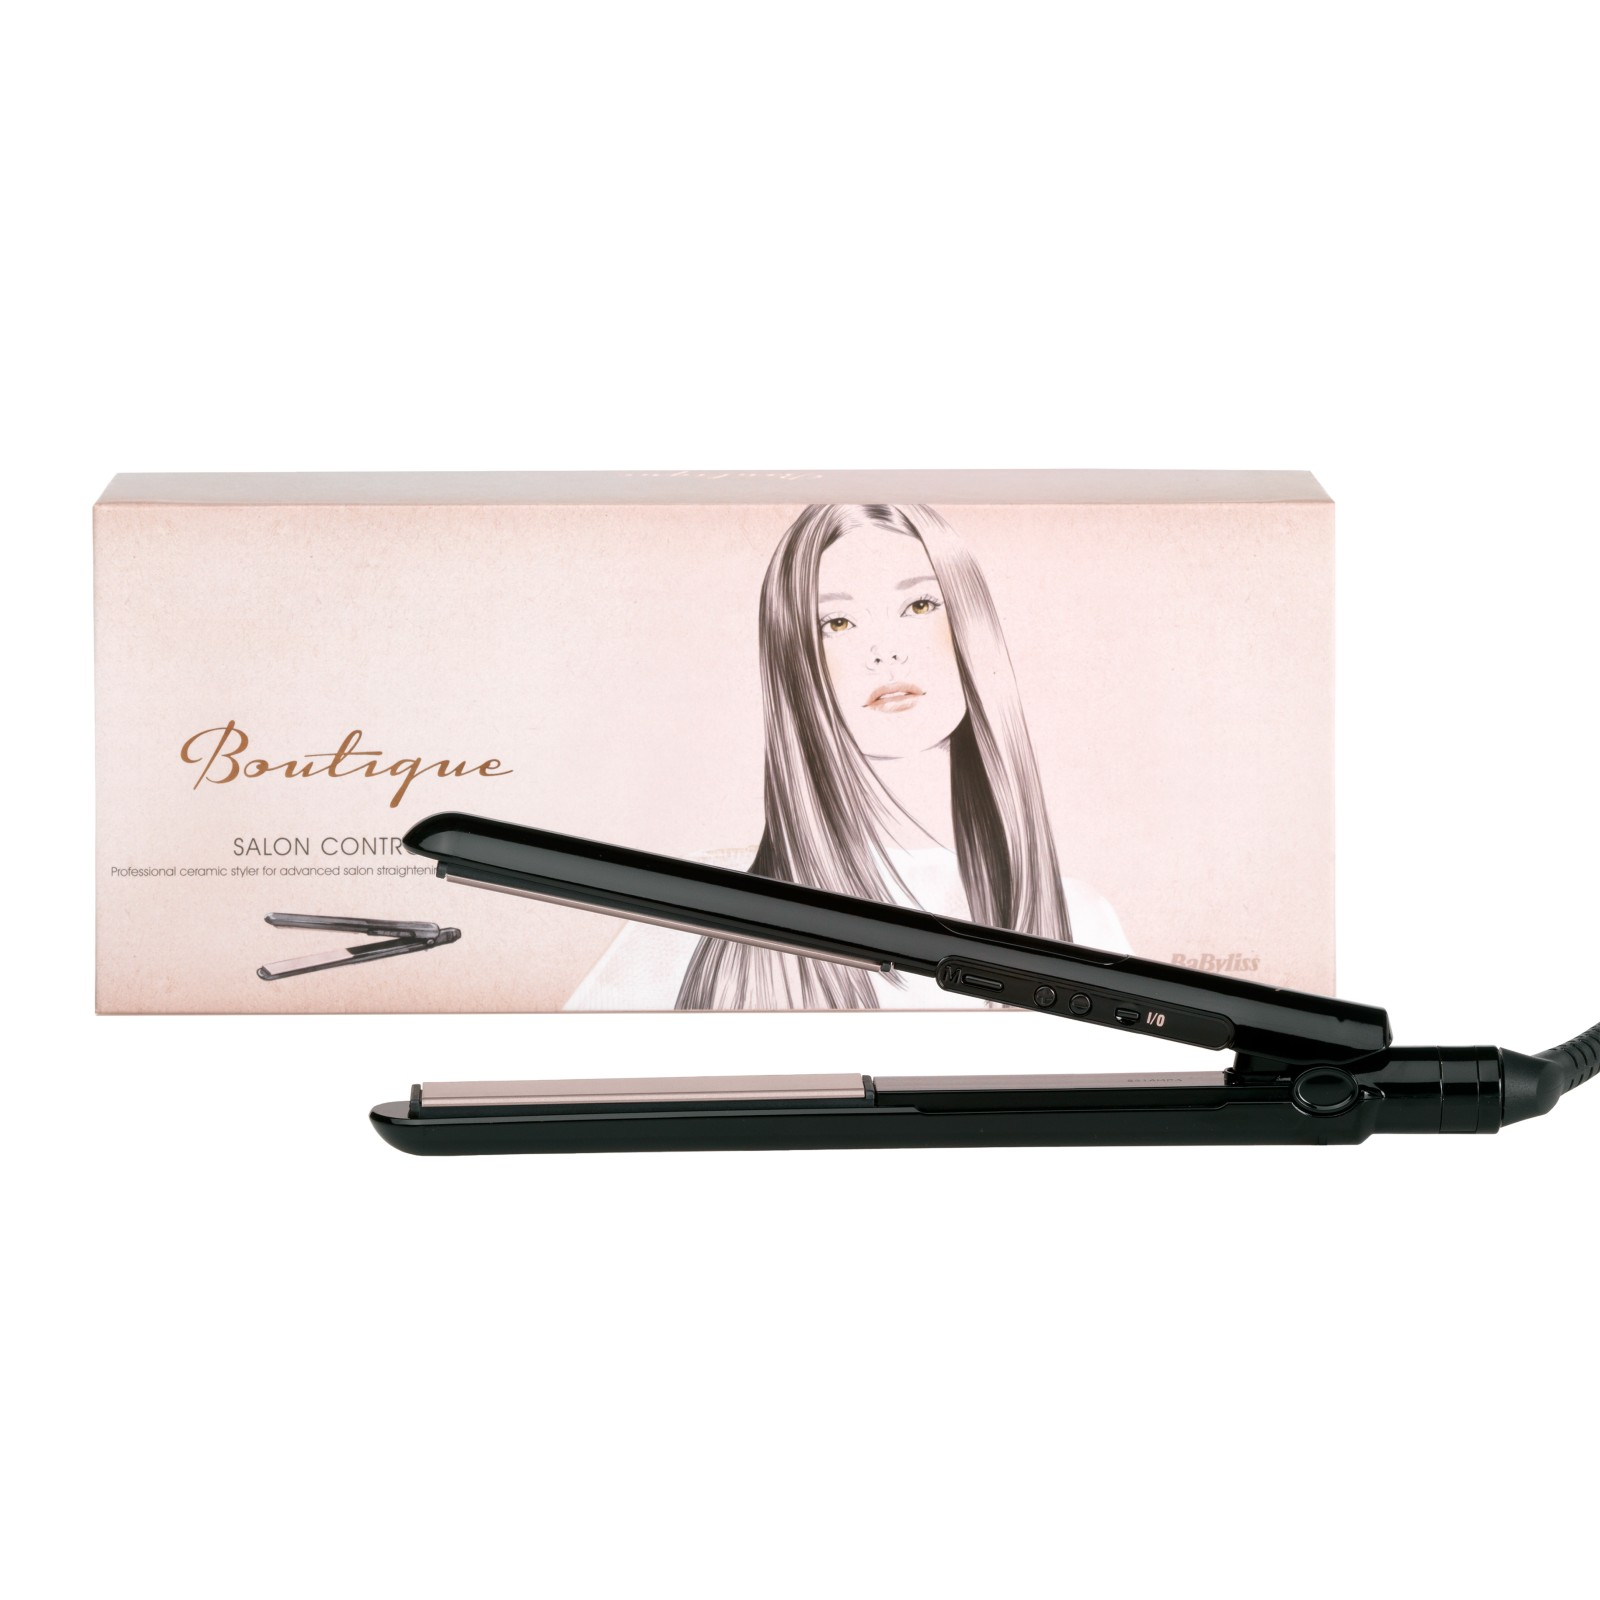 BaByliss Boutique Salon Control 235 Hair Straighteners